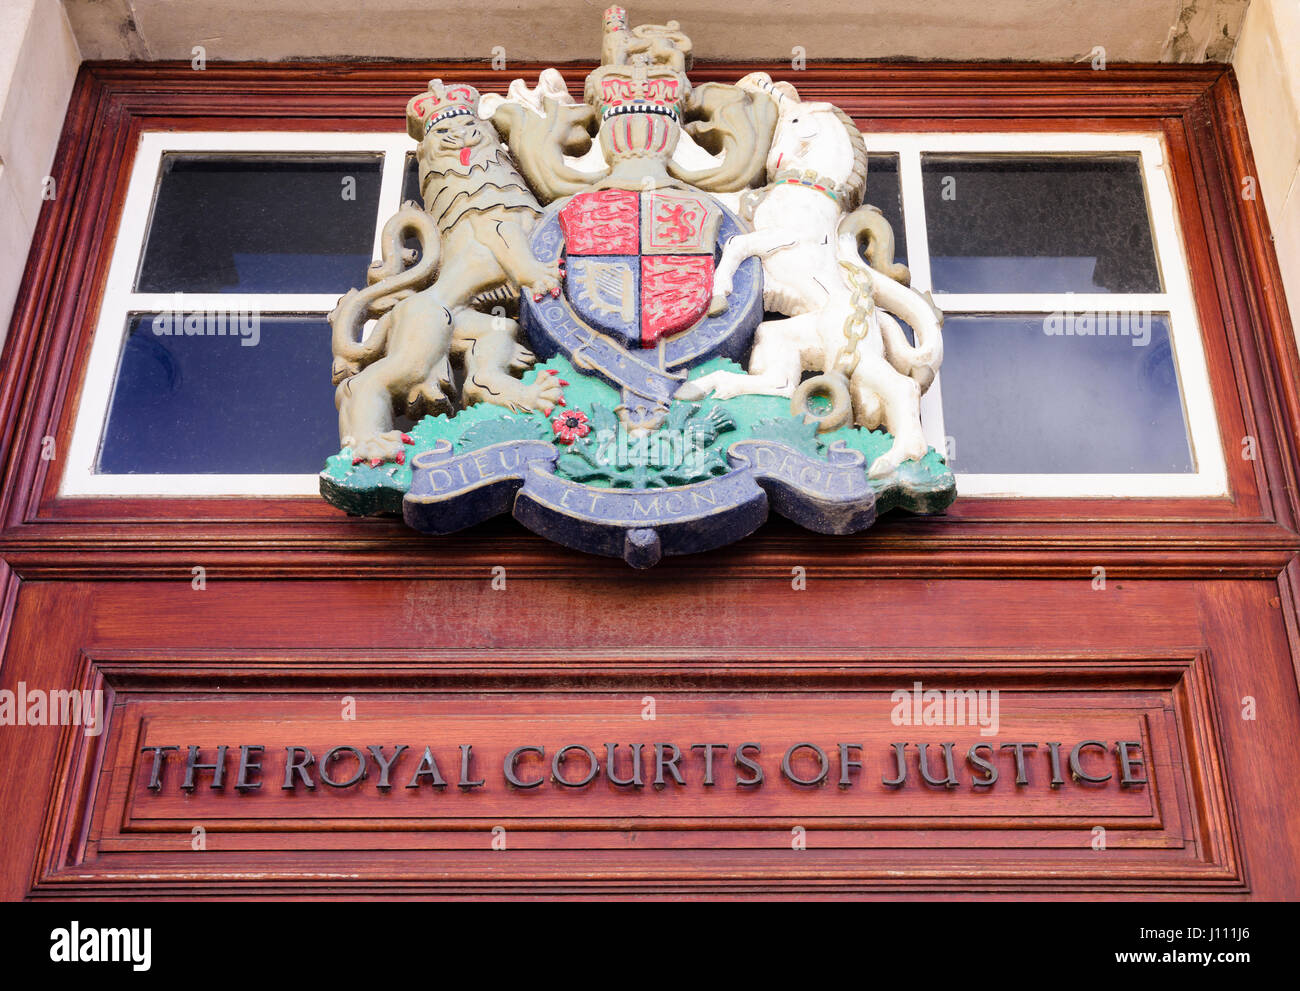 Royal coat of arms above the door of the Royal Courts of Justice, Belfast. - Stock Image